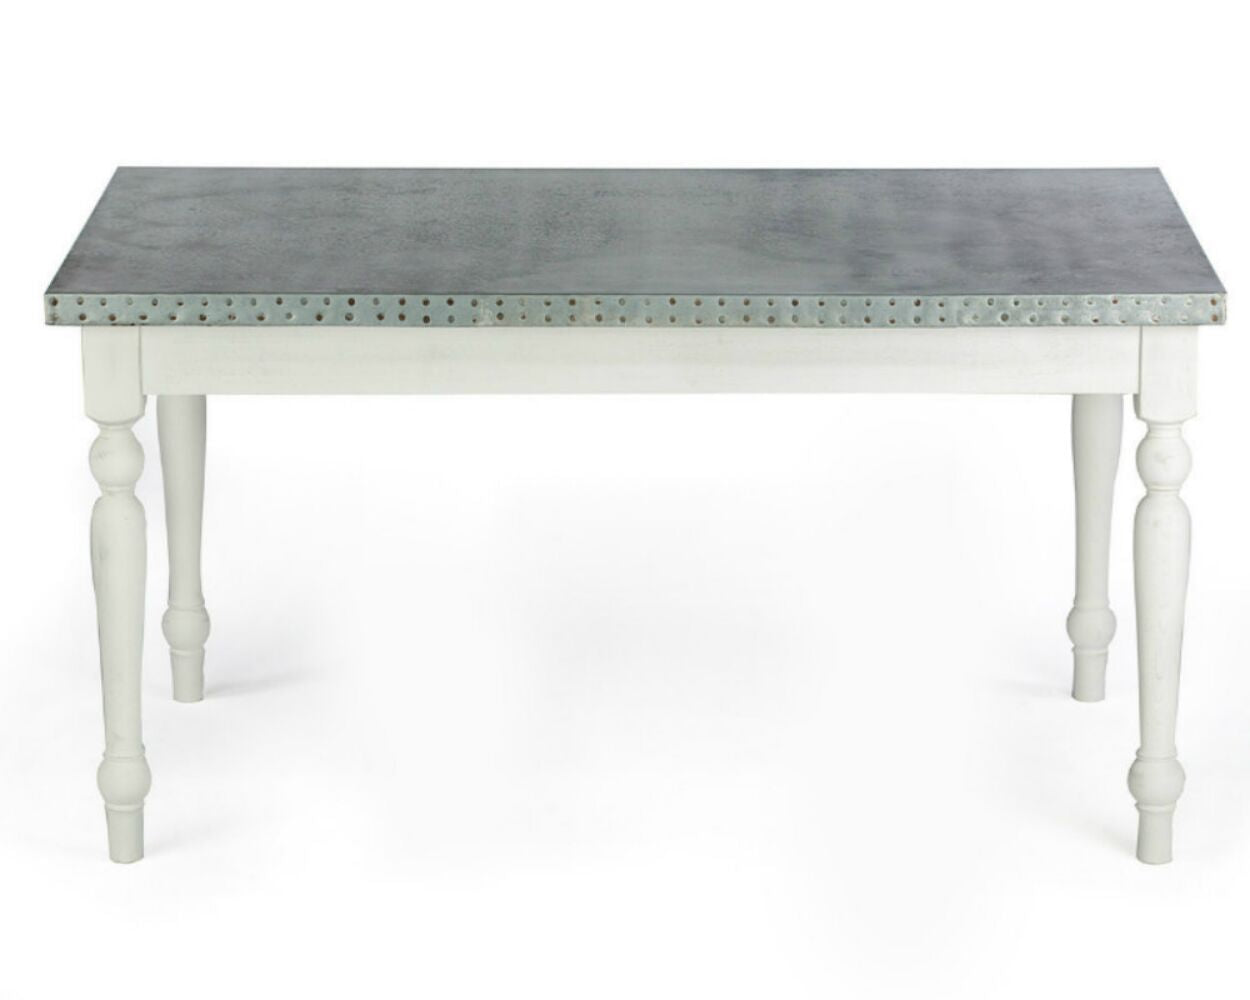 "Zinc Rectangular Table | Middleton Table | CLASSIC | White on Poplar | CUSTOM SIZE 60""L 37""W 30""H 